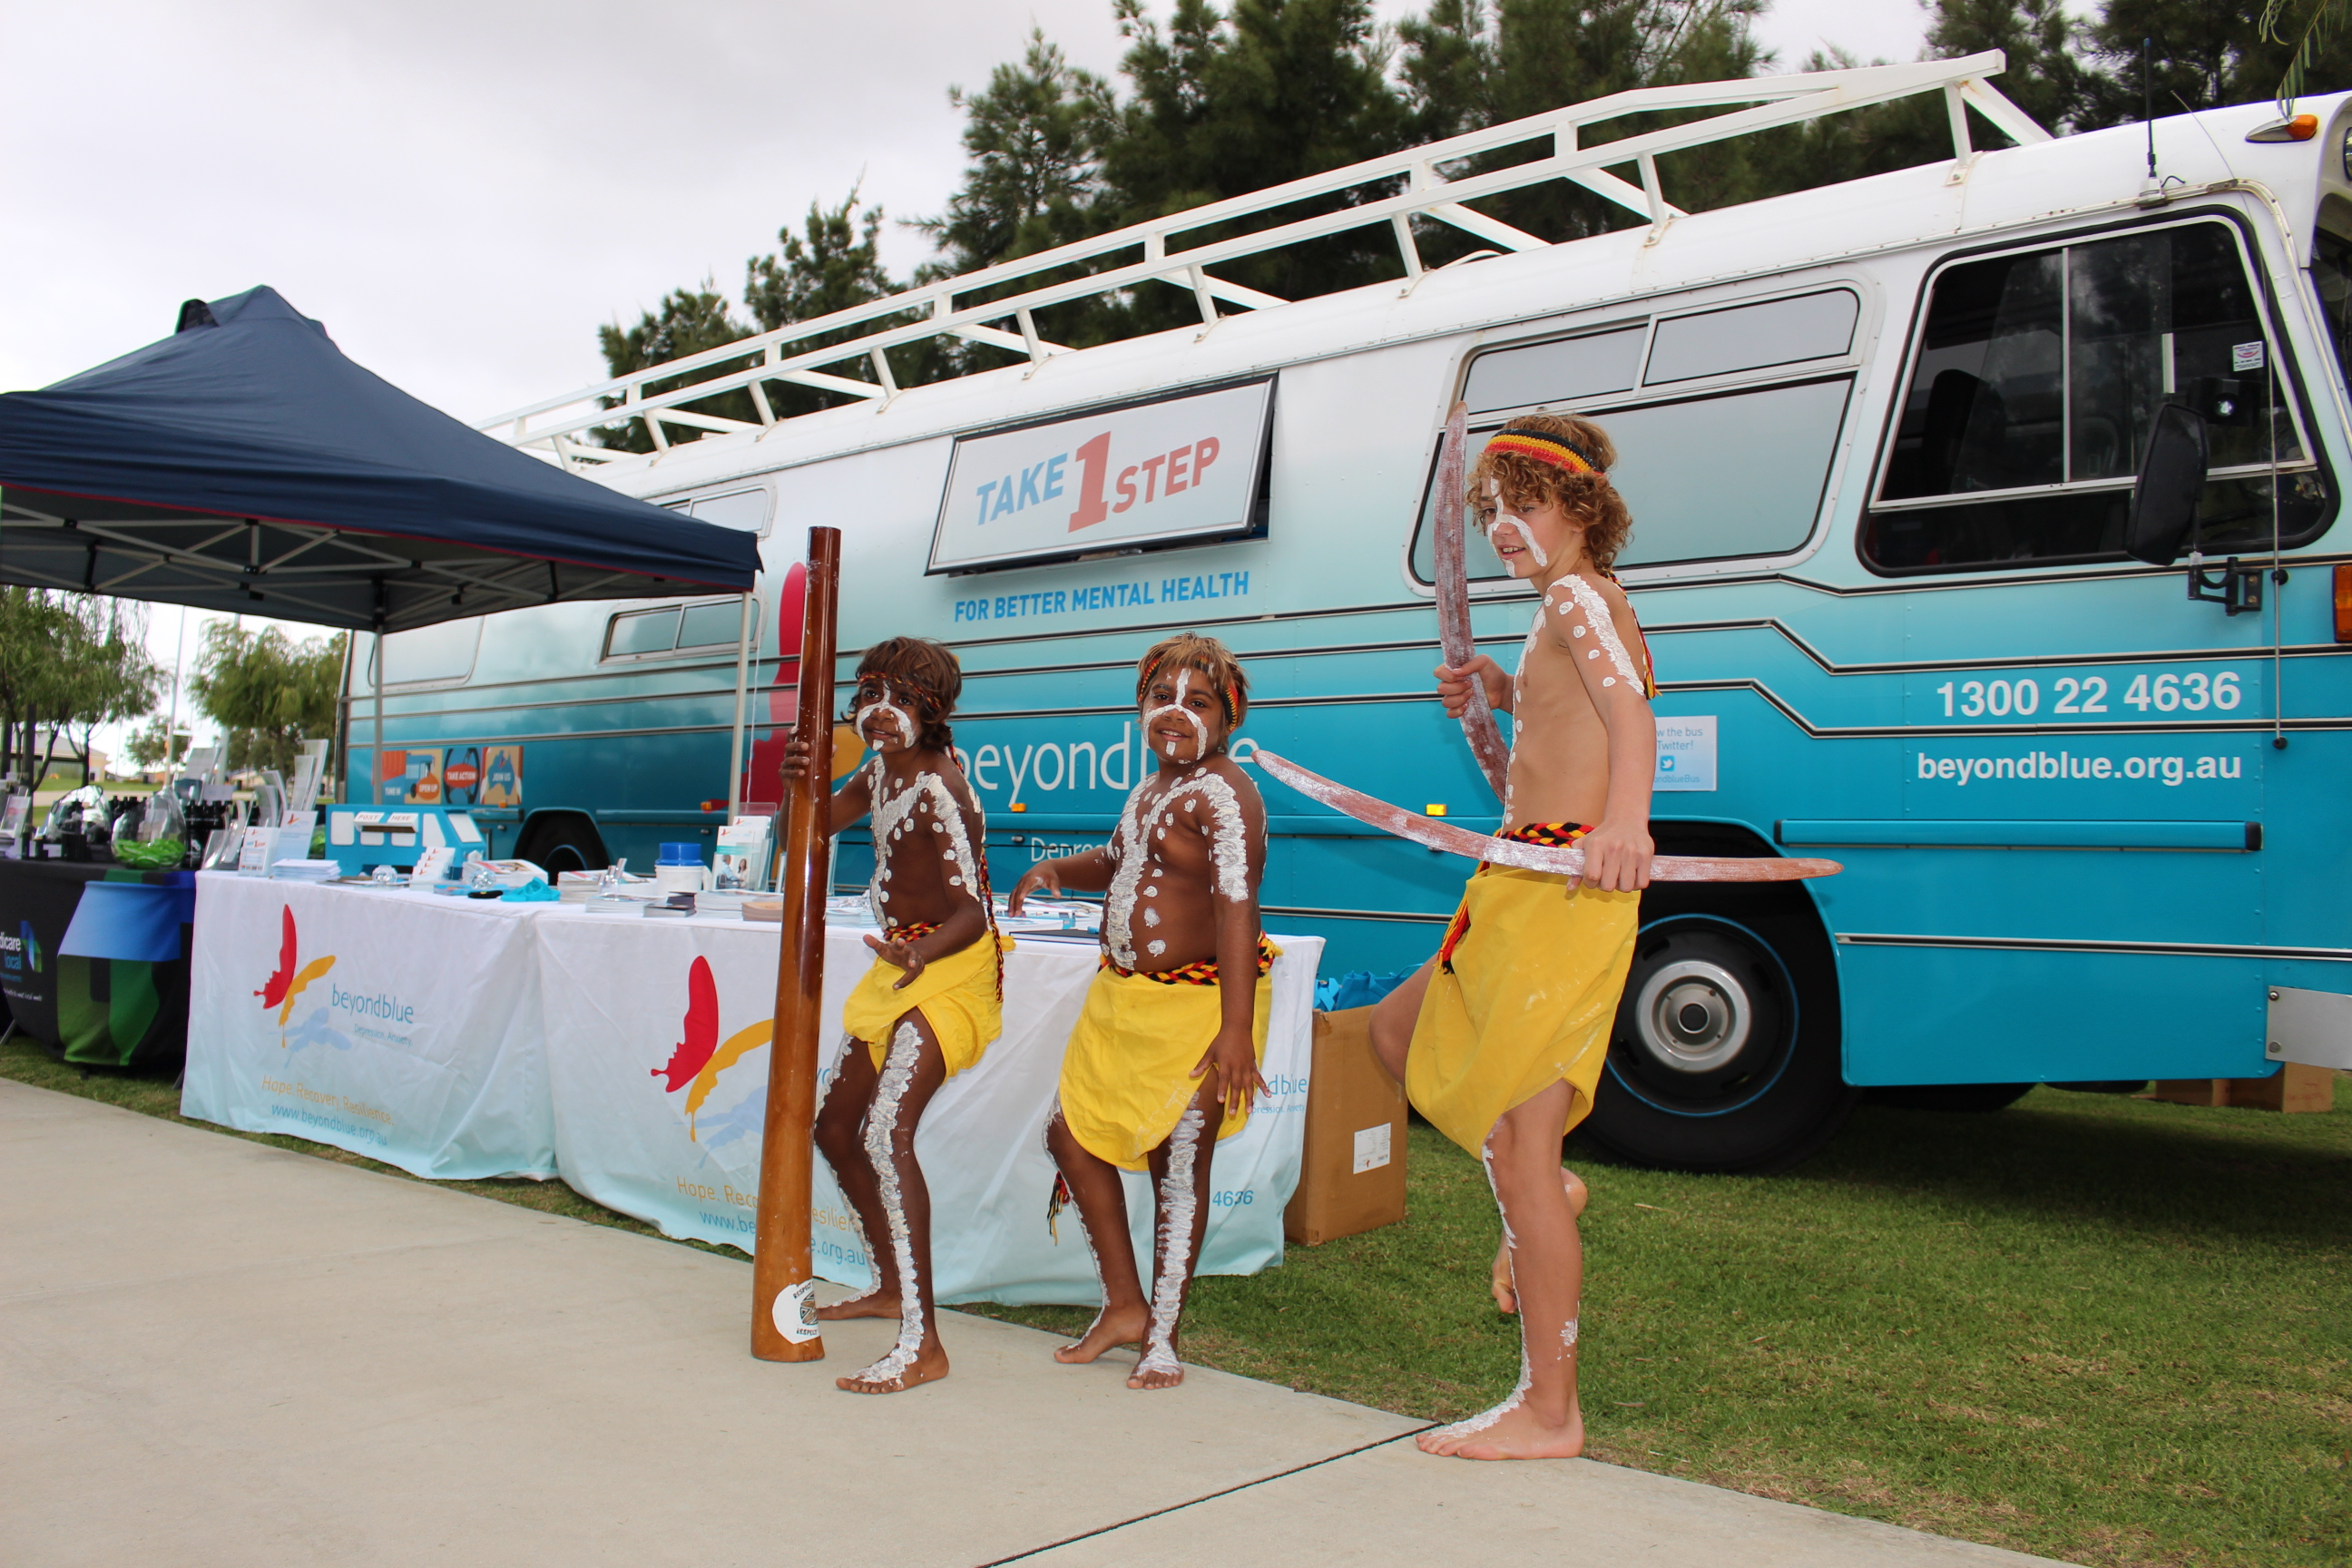 Traditions shared at the City of Wanneroo's National Reconciliation Week event in Banksia Grove: WA.